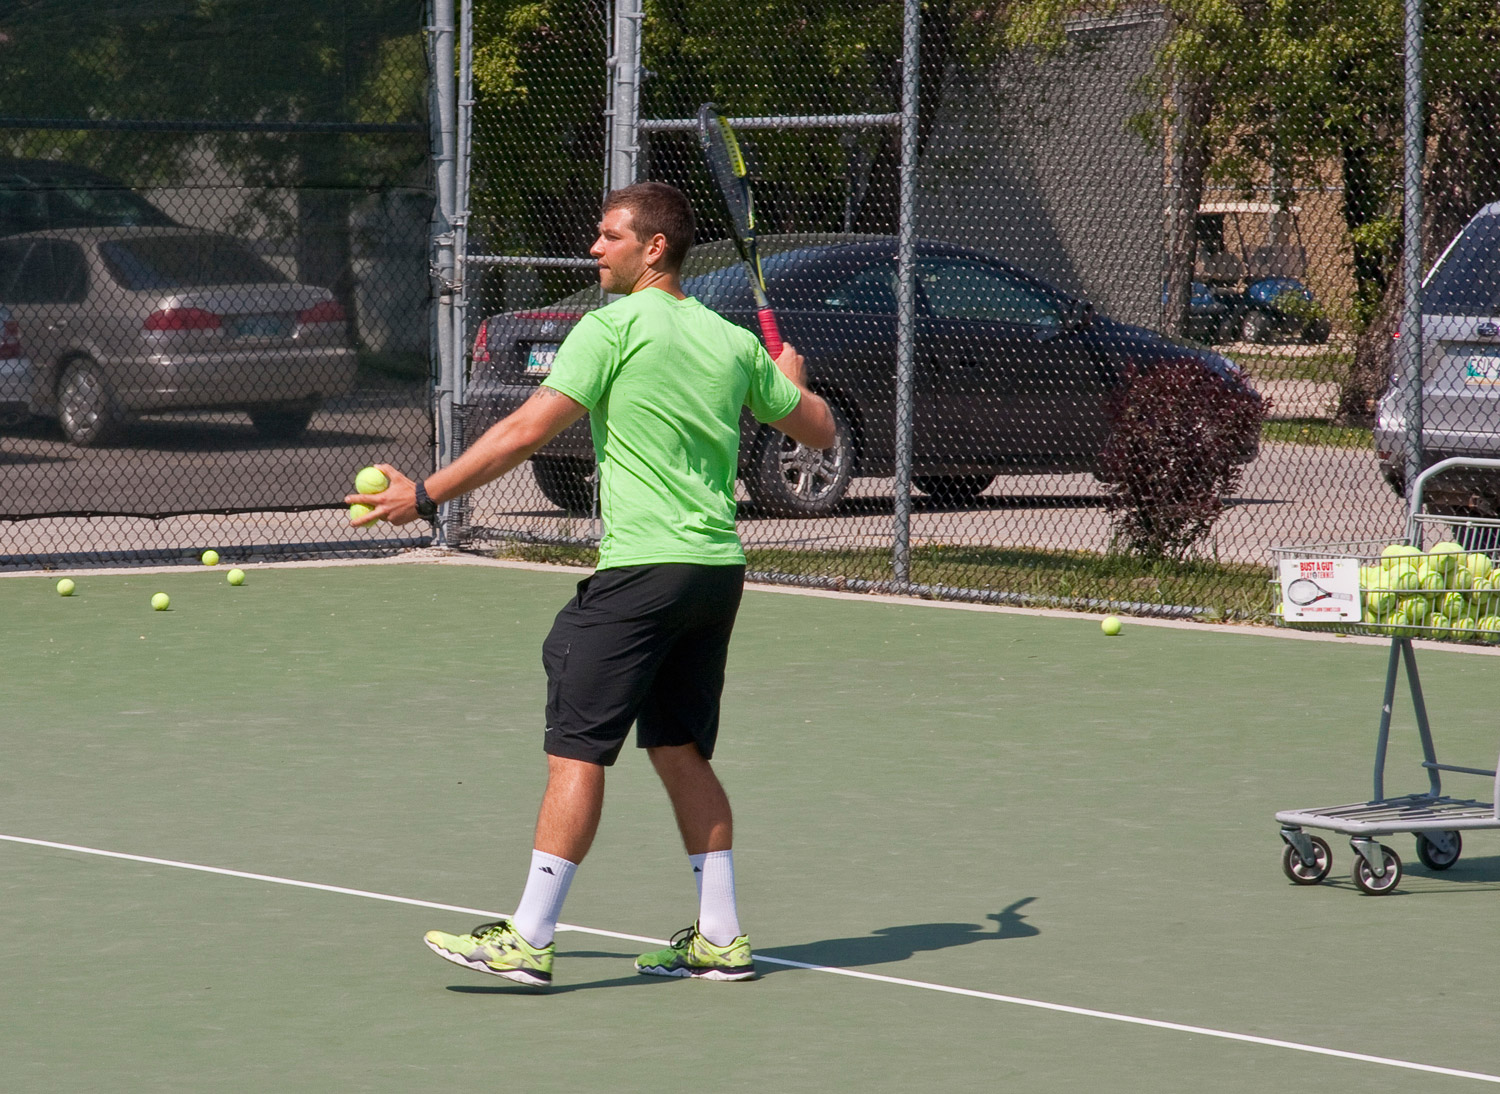 - Strategy and technique sessions designed to hone your game.Fee: $28 per personMinimum 4 people/maximum 6 people per courtMinimum 1 month commitment2 courts for each hour: All Levels